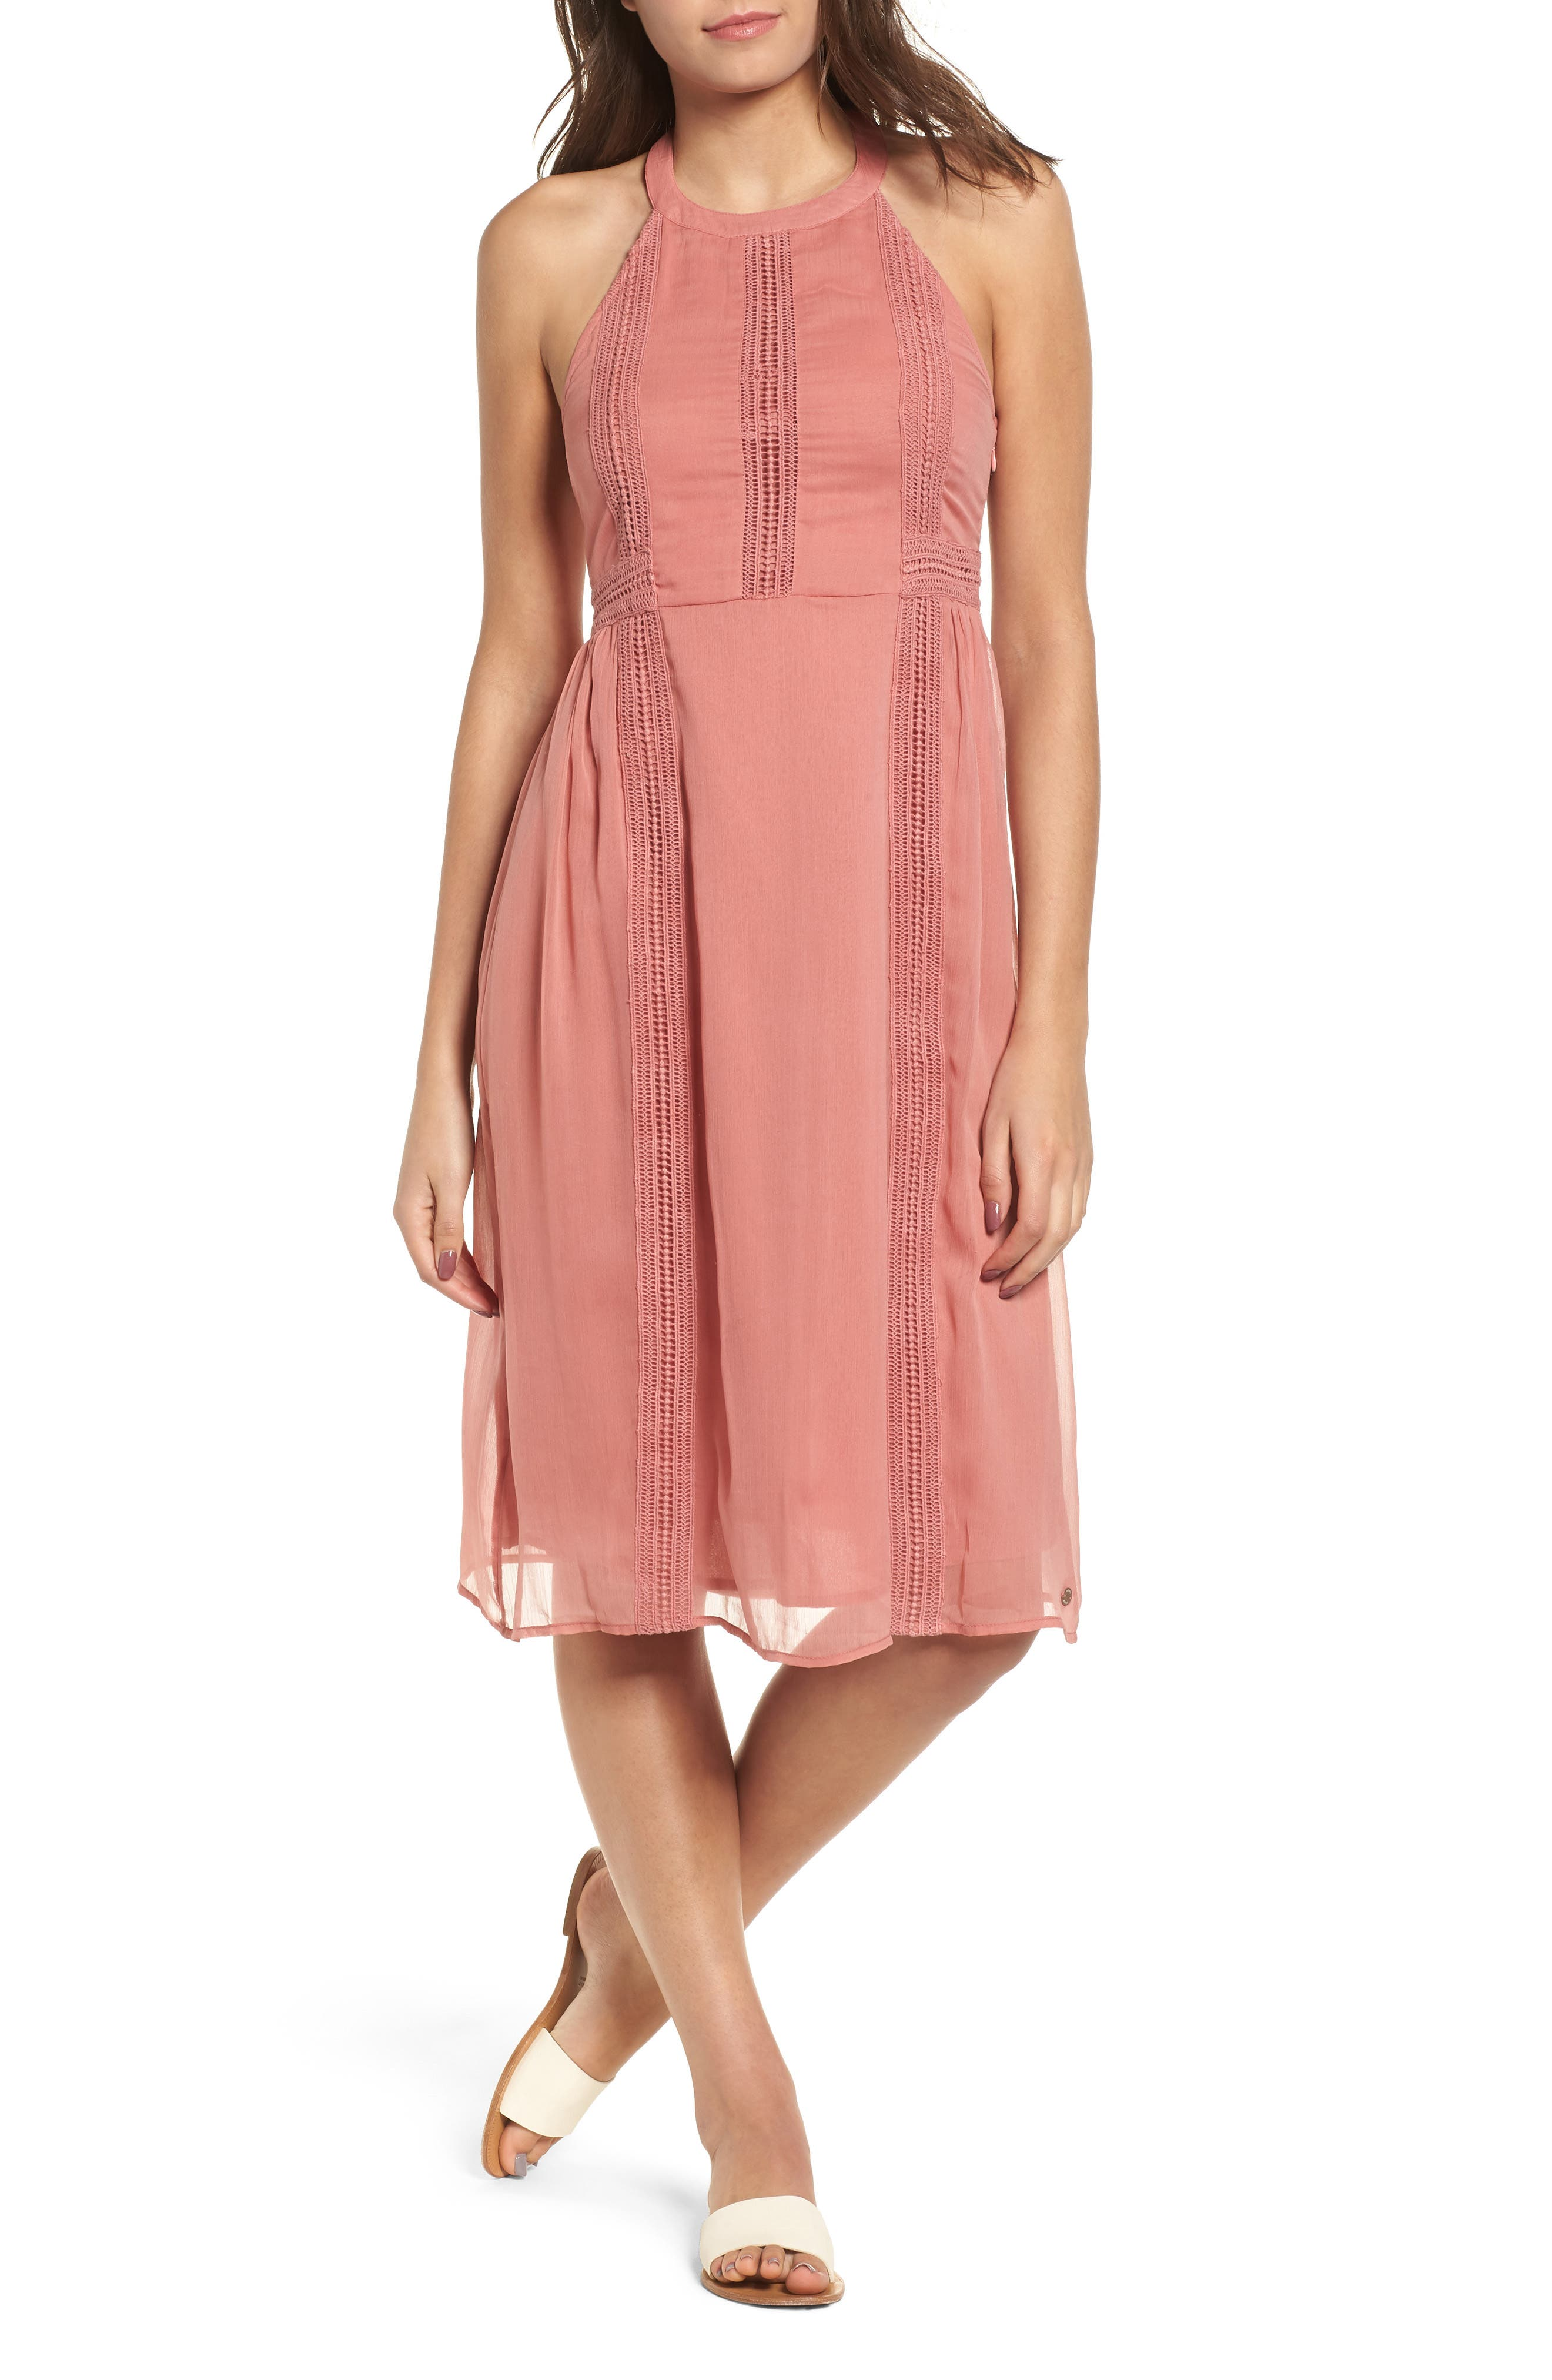 Blurred Landscape Dress,                             Main thumbnail 1, color,                             WITHERED ROSE